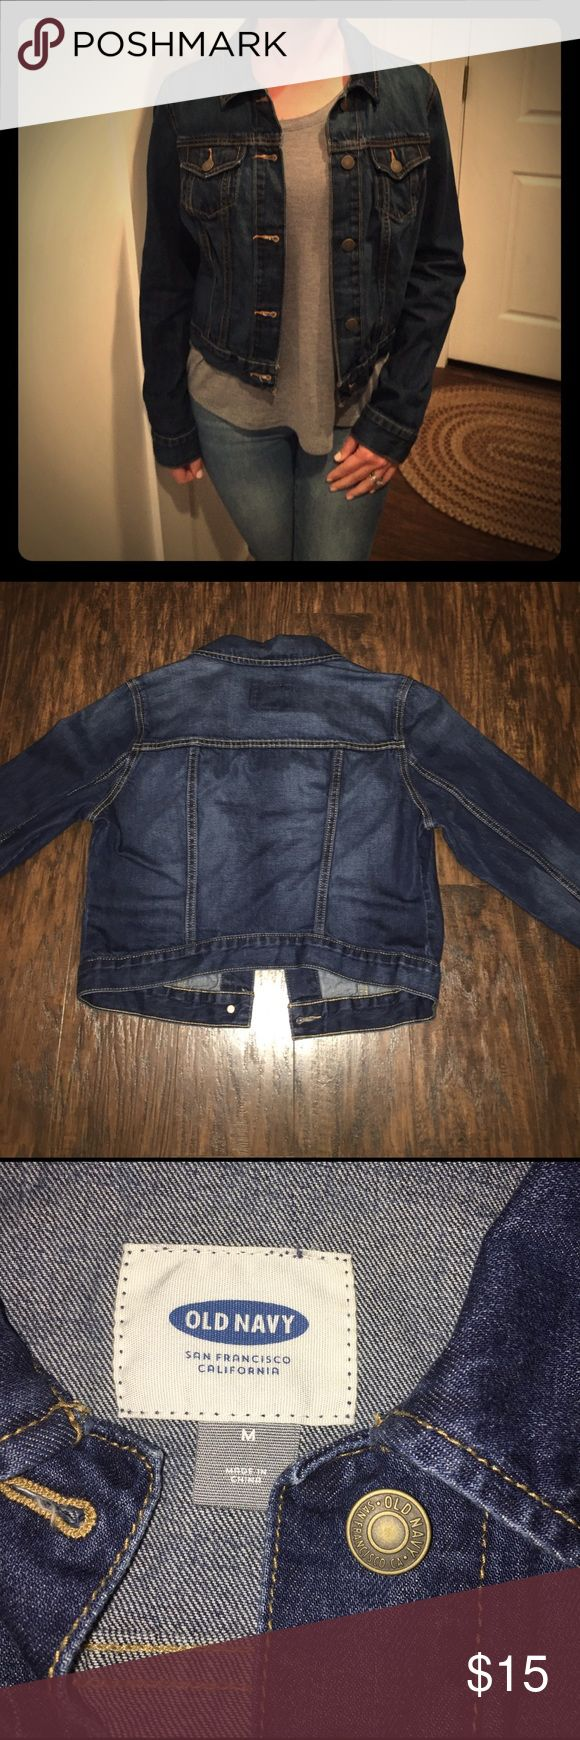 OLD NAVY JACKET Cropped denim jacket with full length sleeves and brass buttons Old Navy Jackets & Coats Jean Jackets